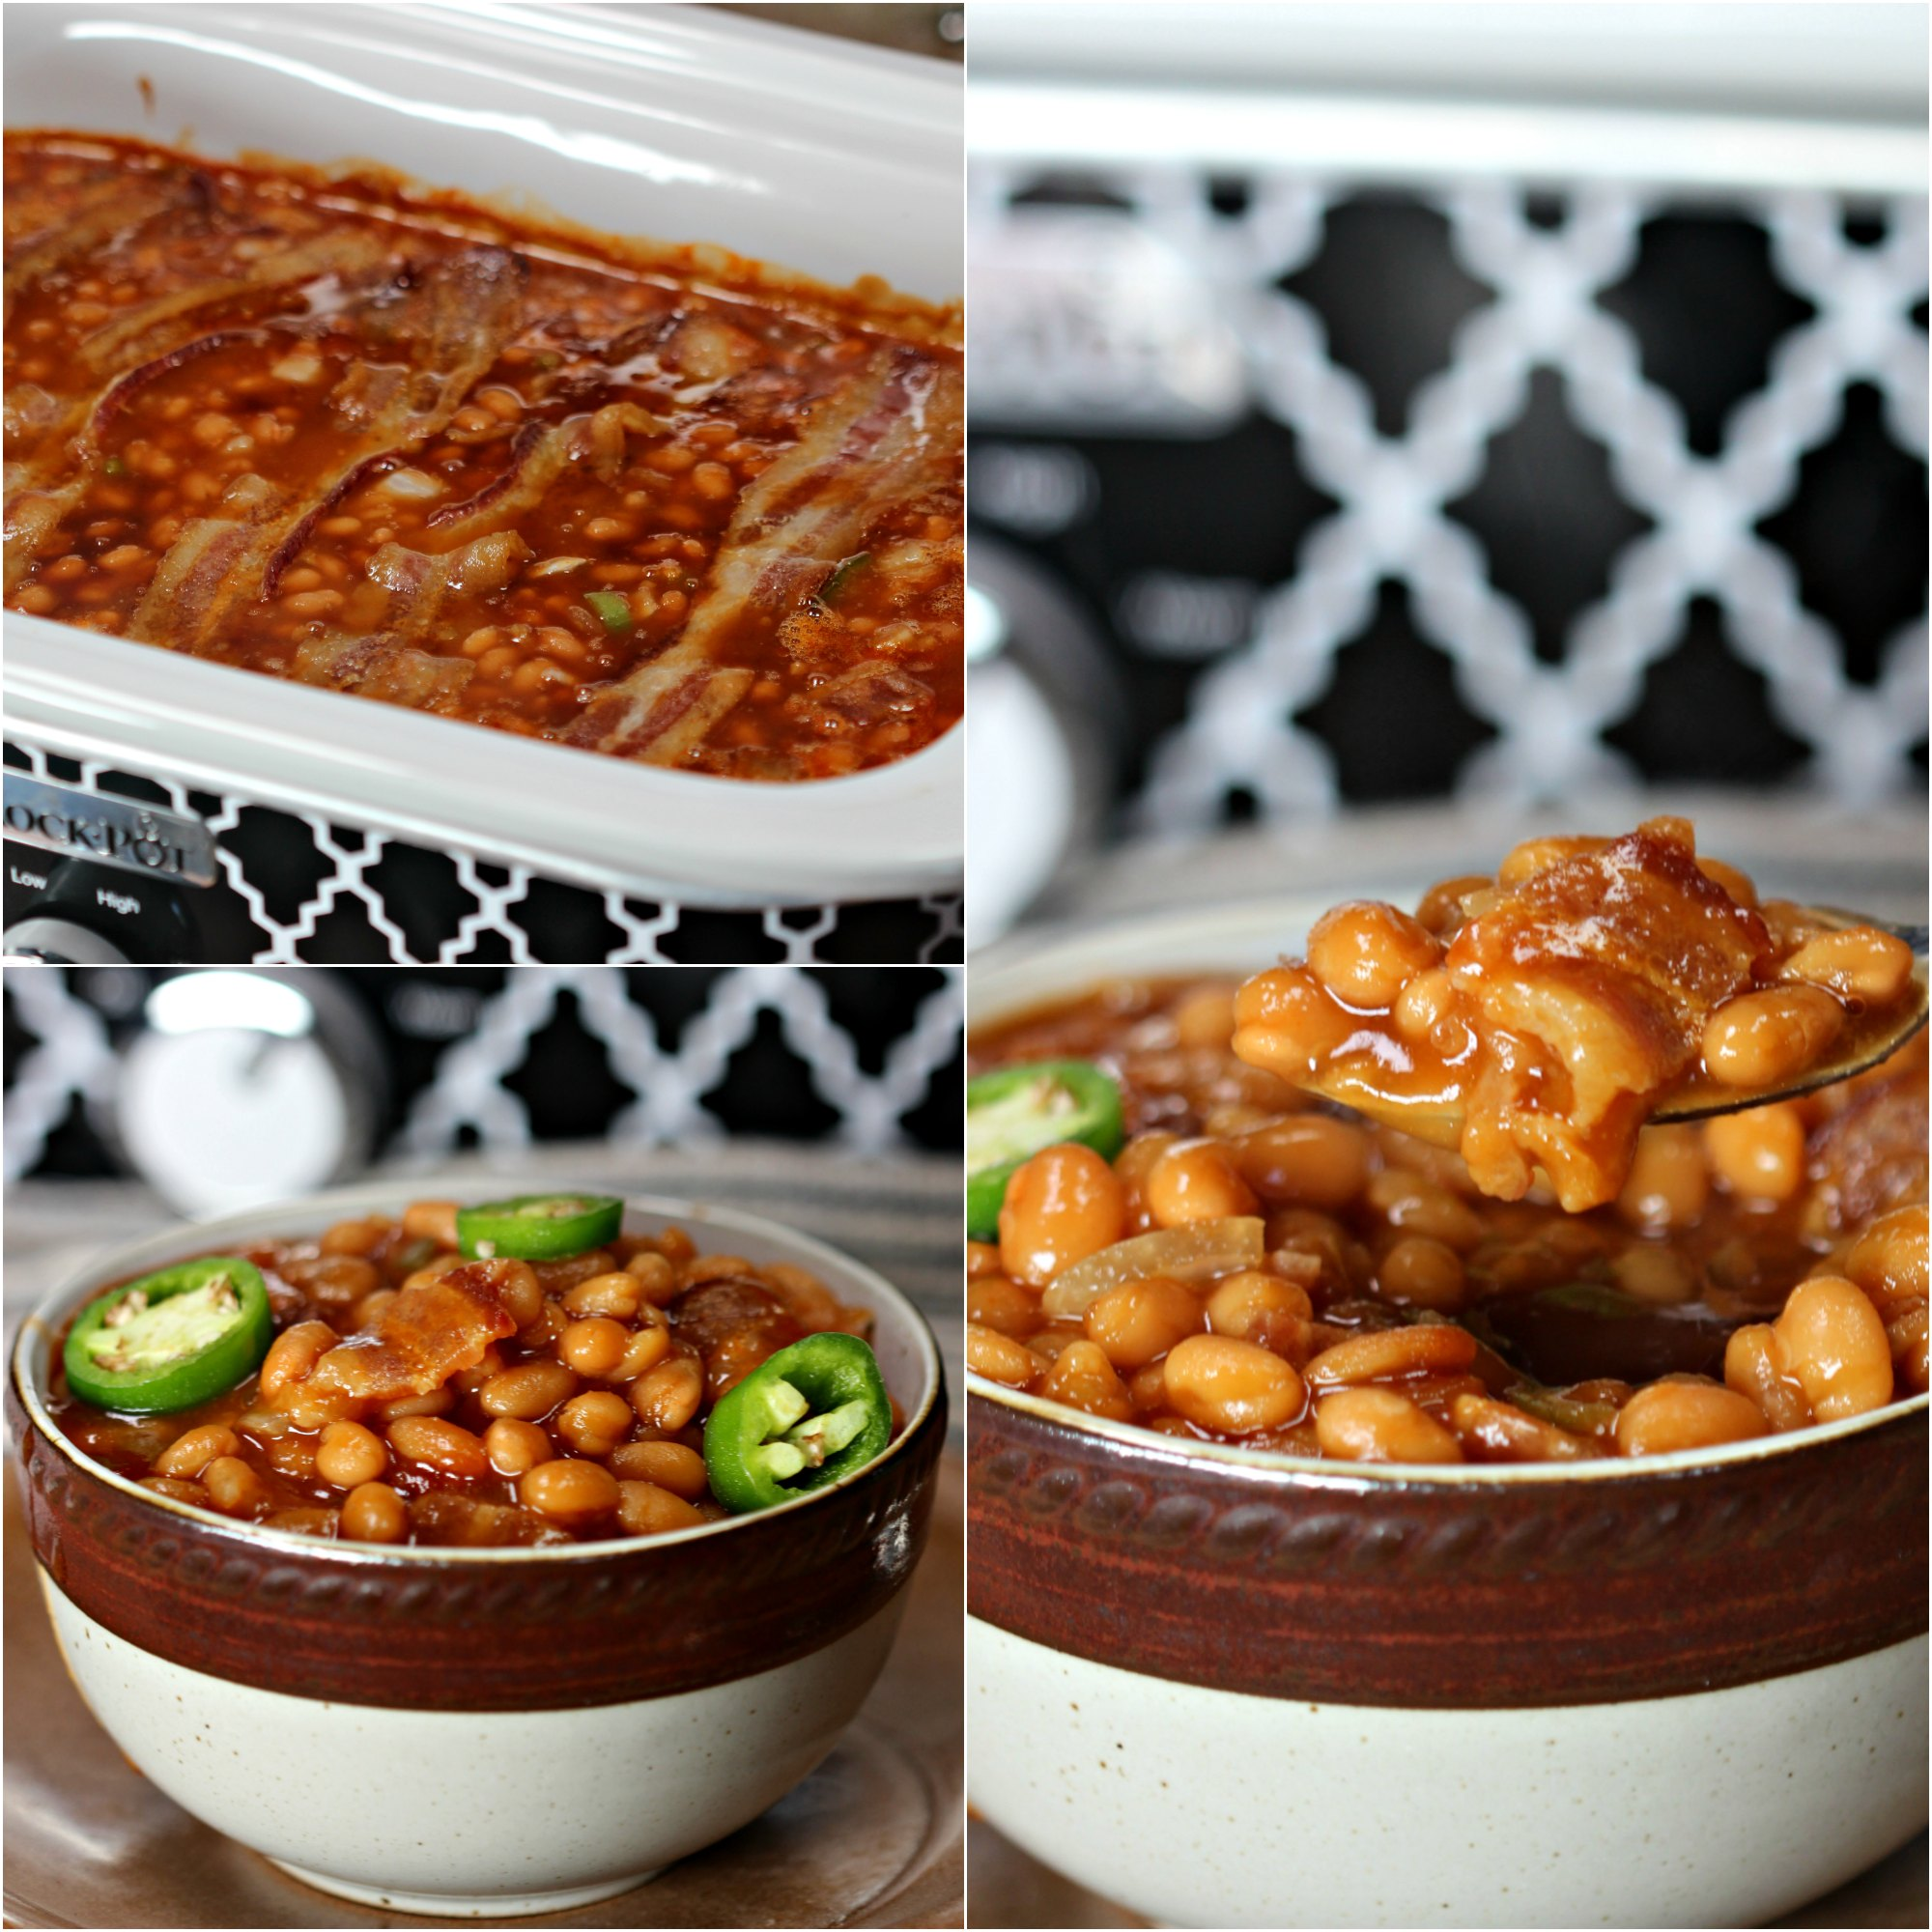 This crock pot baked beans recipe is amazing! It is the best baked beans recipe in the crock pot you can make! Spicy and sweet you have to try it!